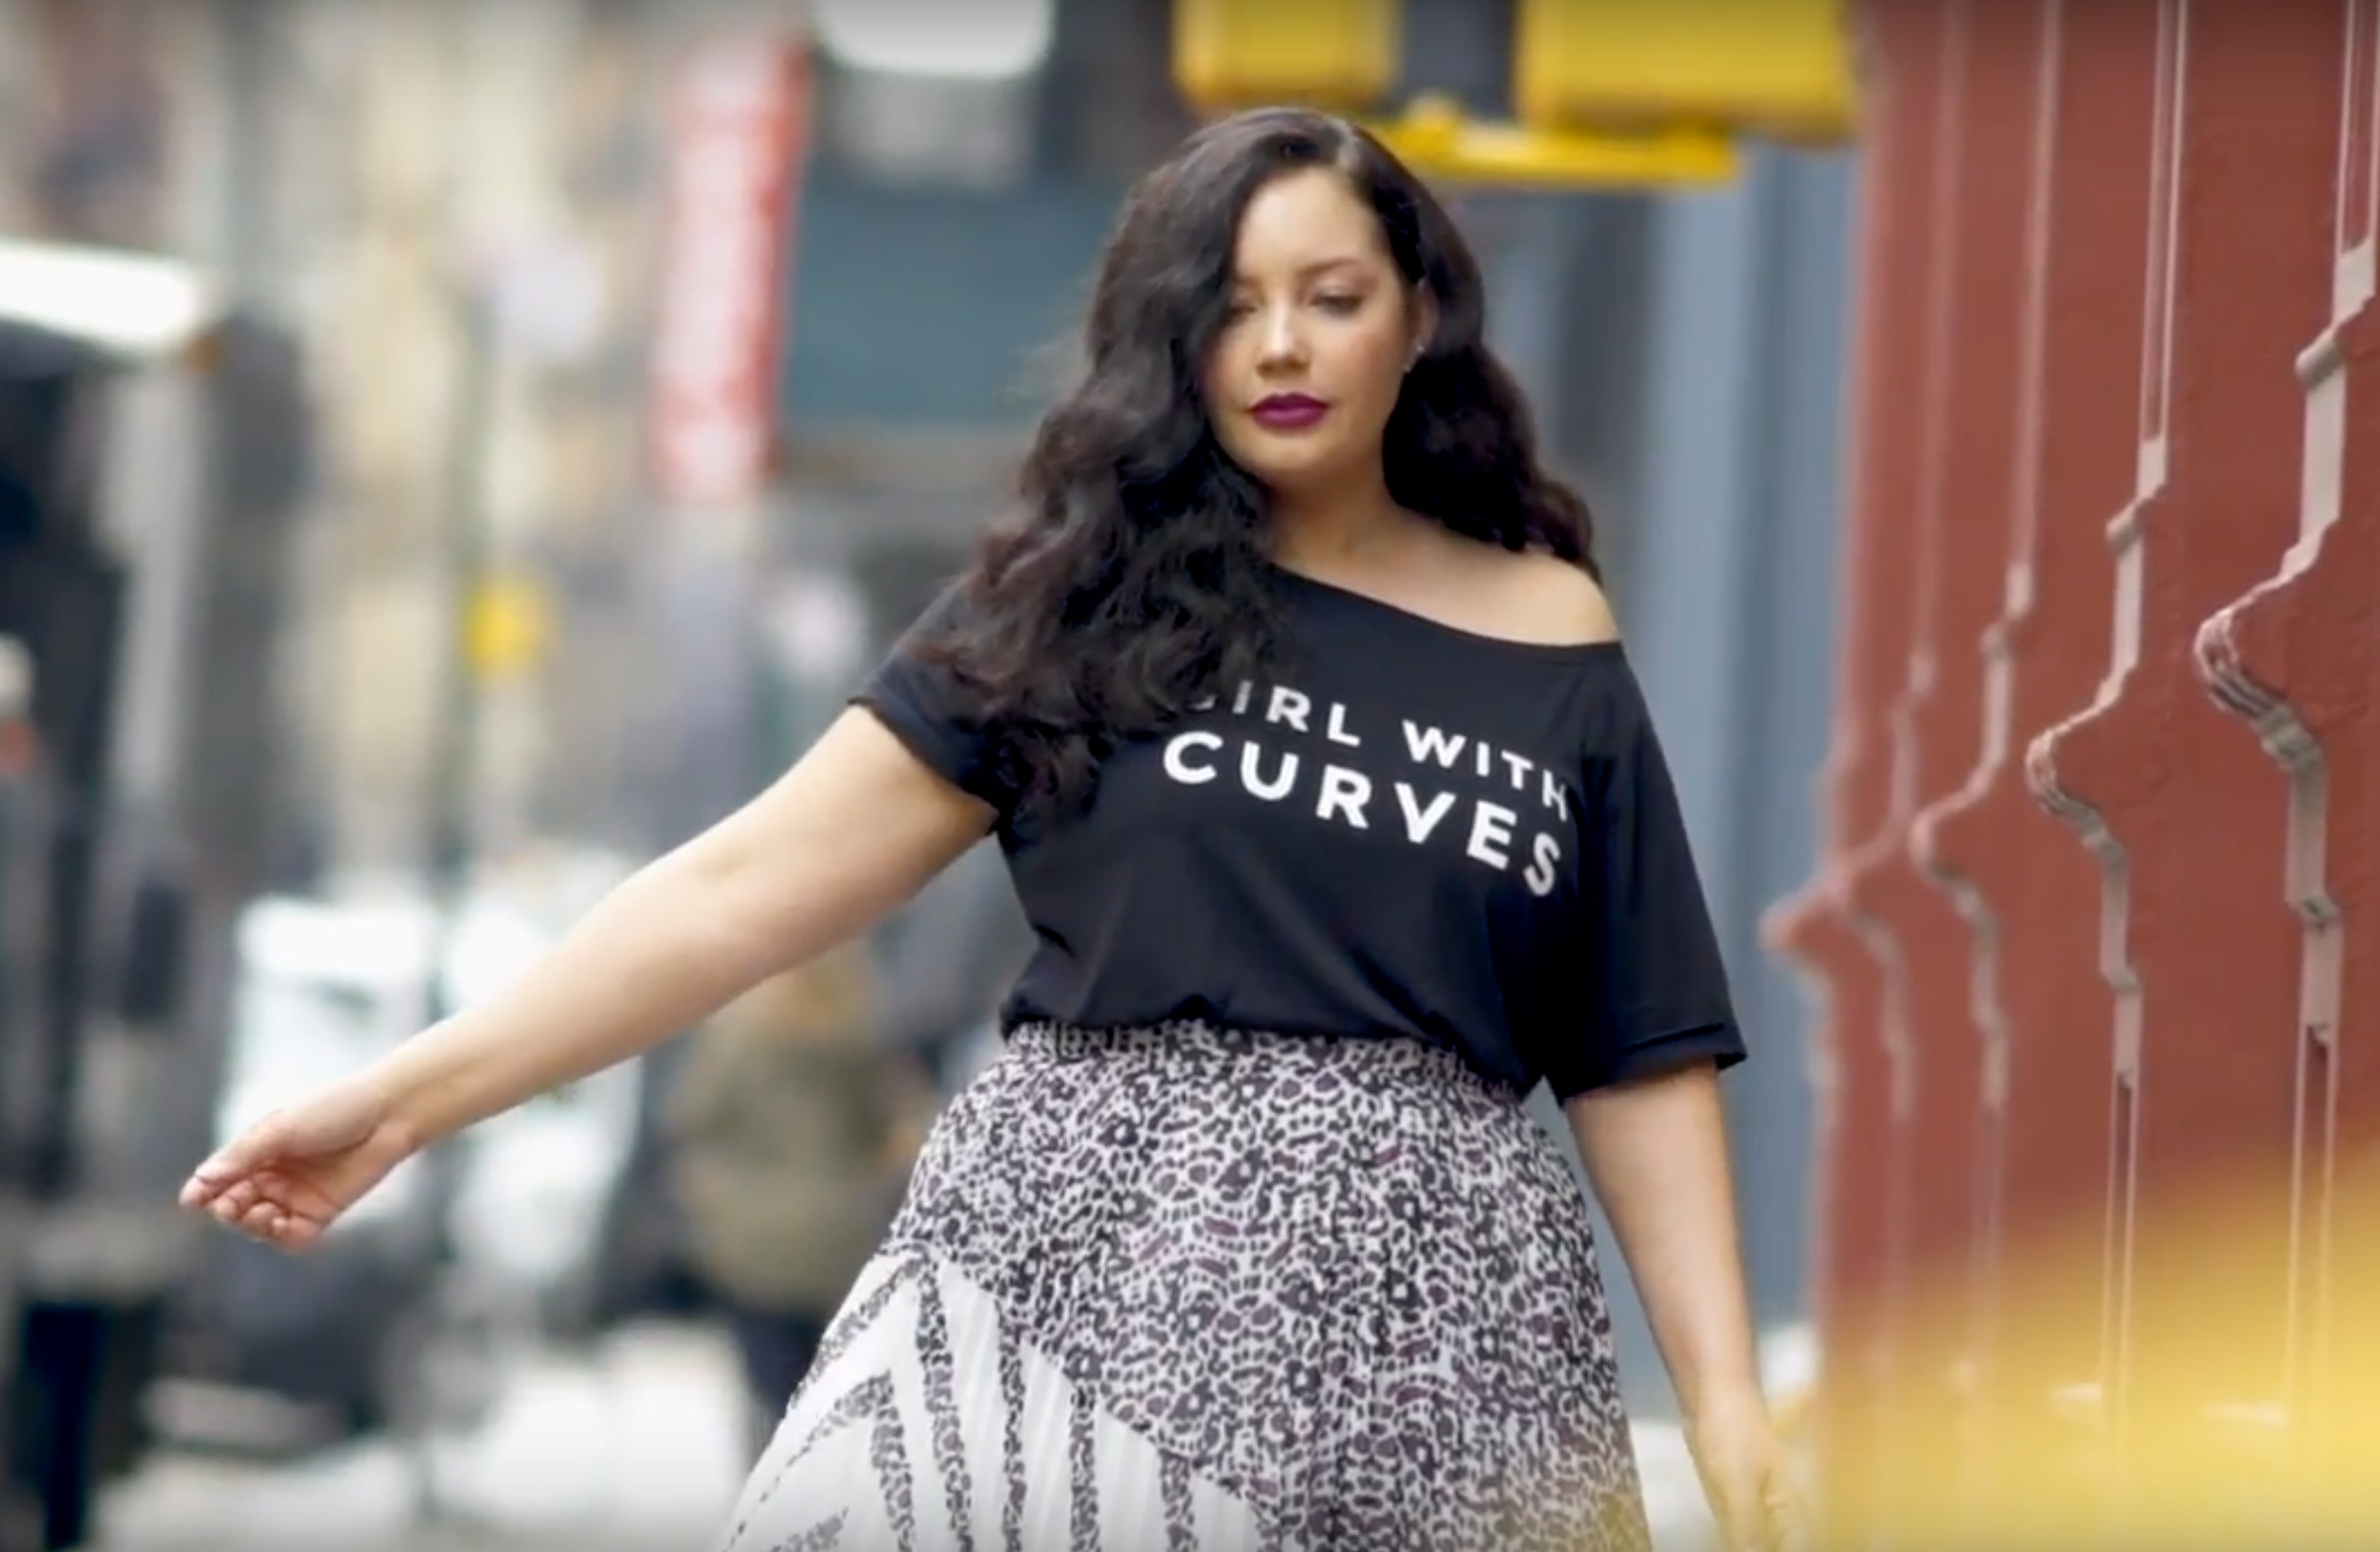 881d25e7b90 When Does Girl With Curves x Lane Bryant Launch  The Collab Is So Good